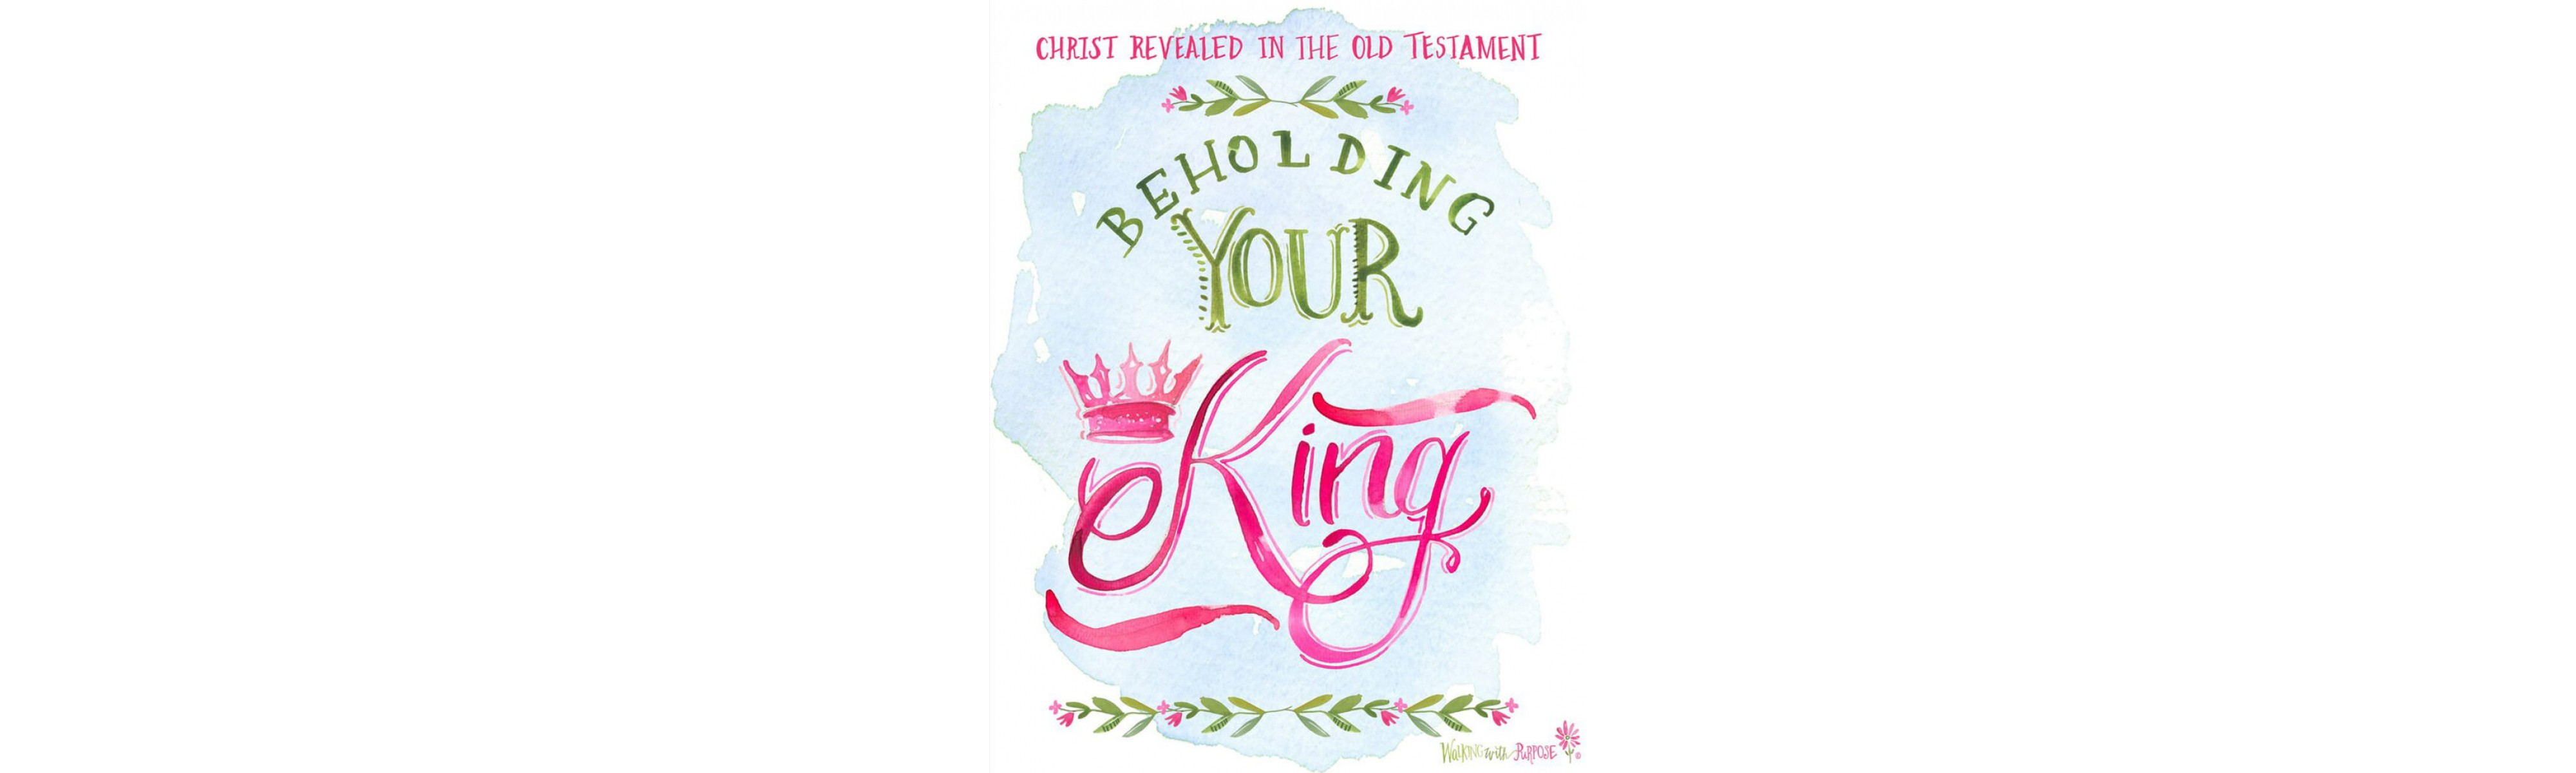 Beholding Your King